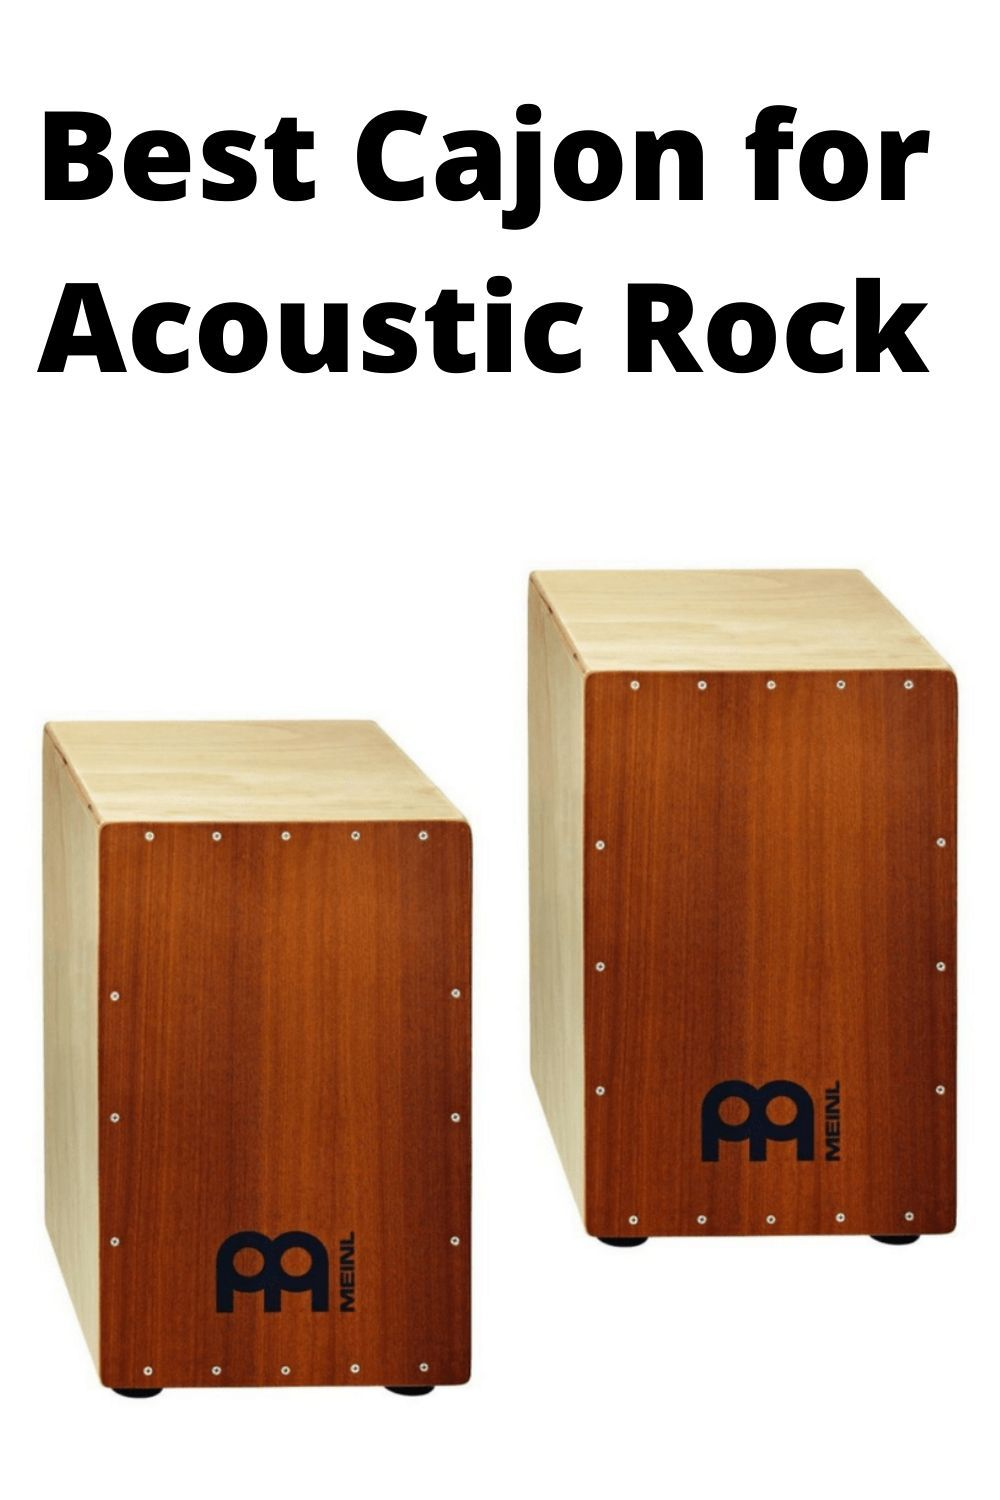 Best Cajon for Acoustic Rock in 2020 Percussion box